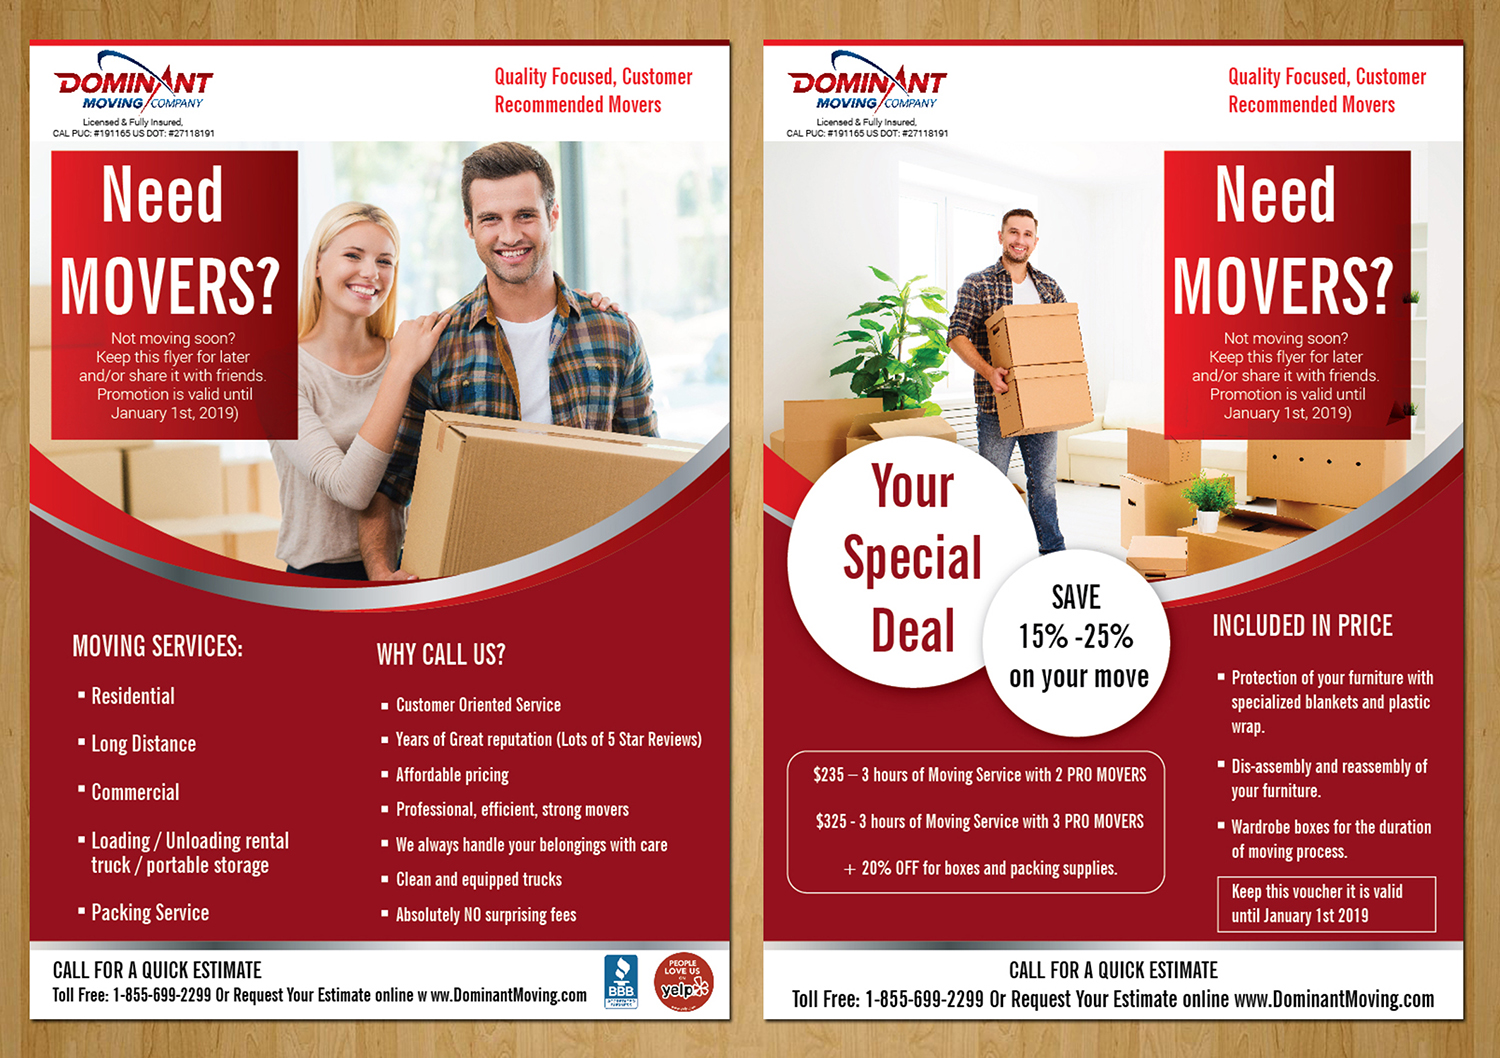 flyer design by designanddevelopment for dominant moving systems design 12130614